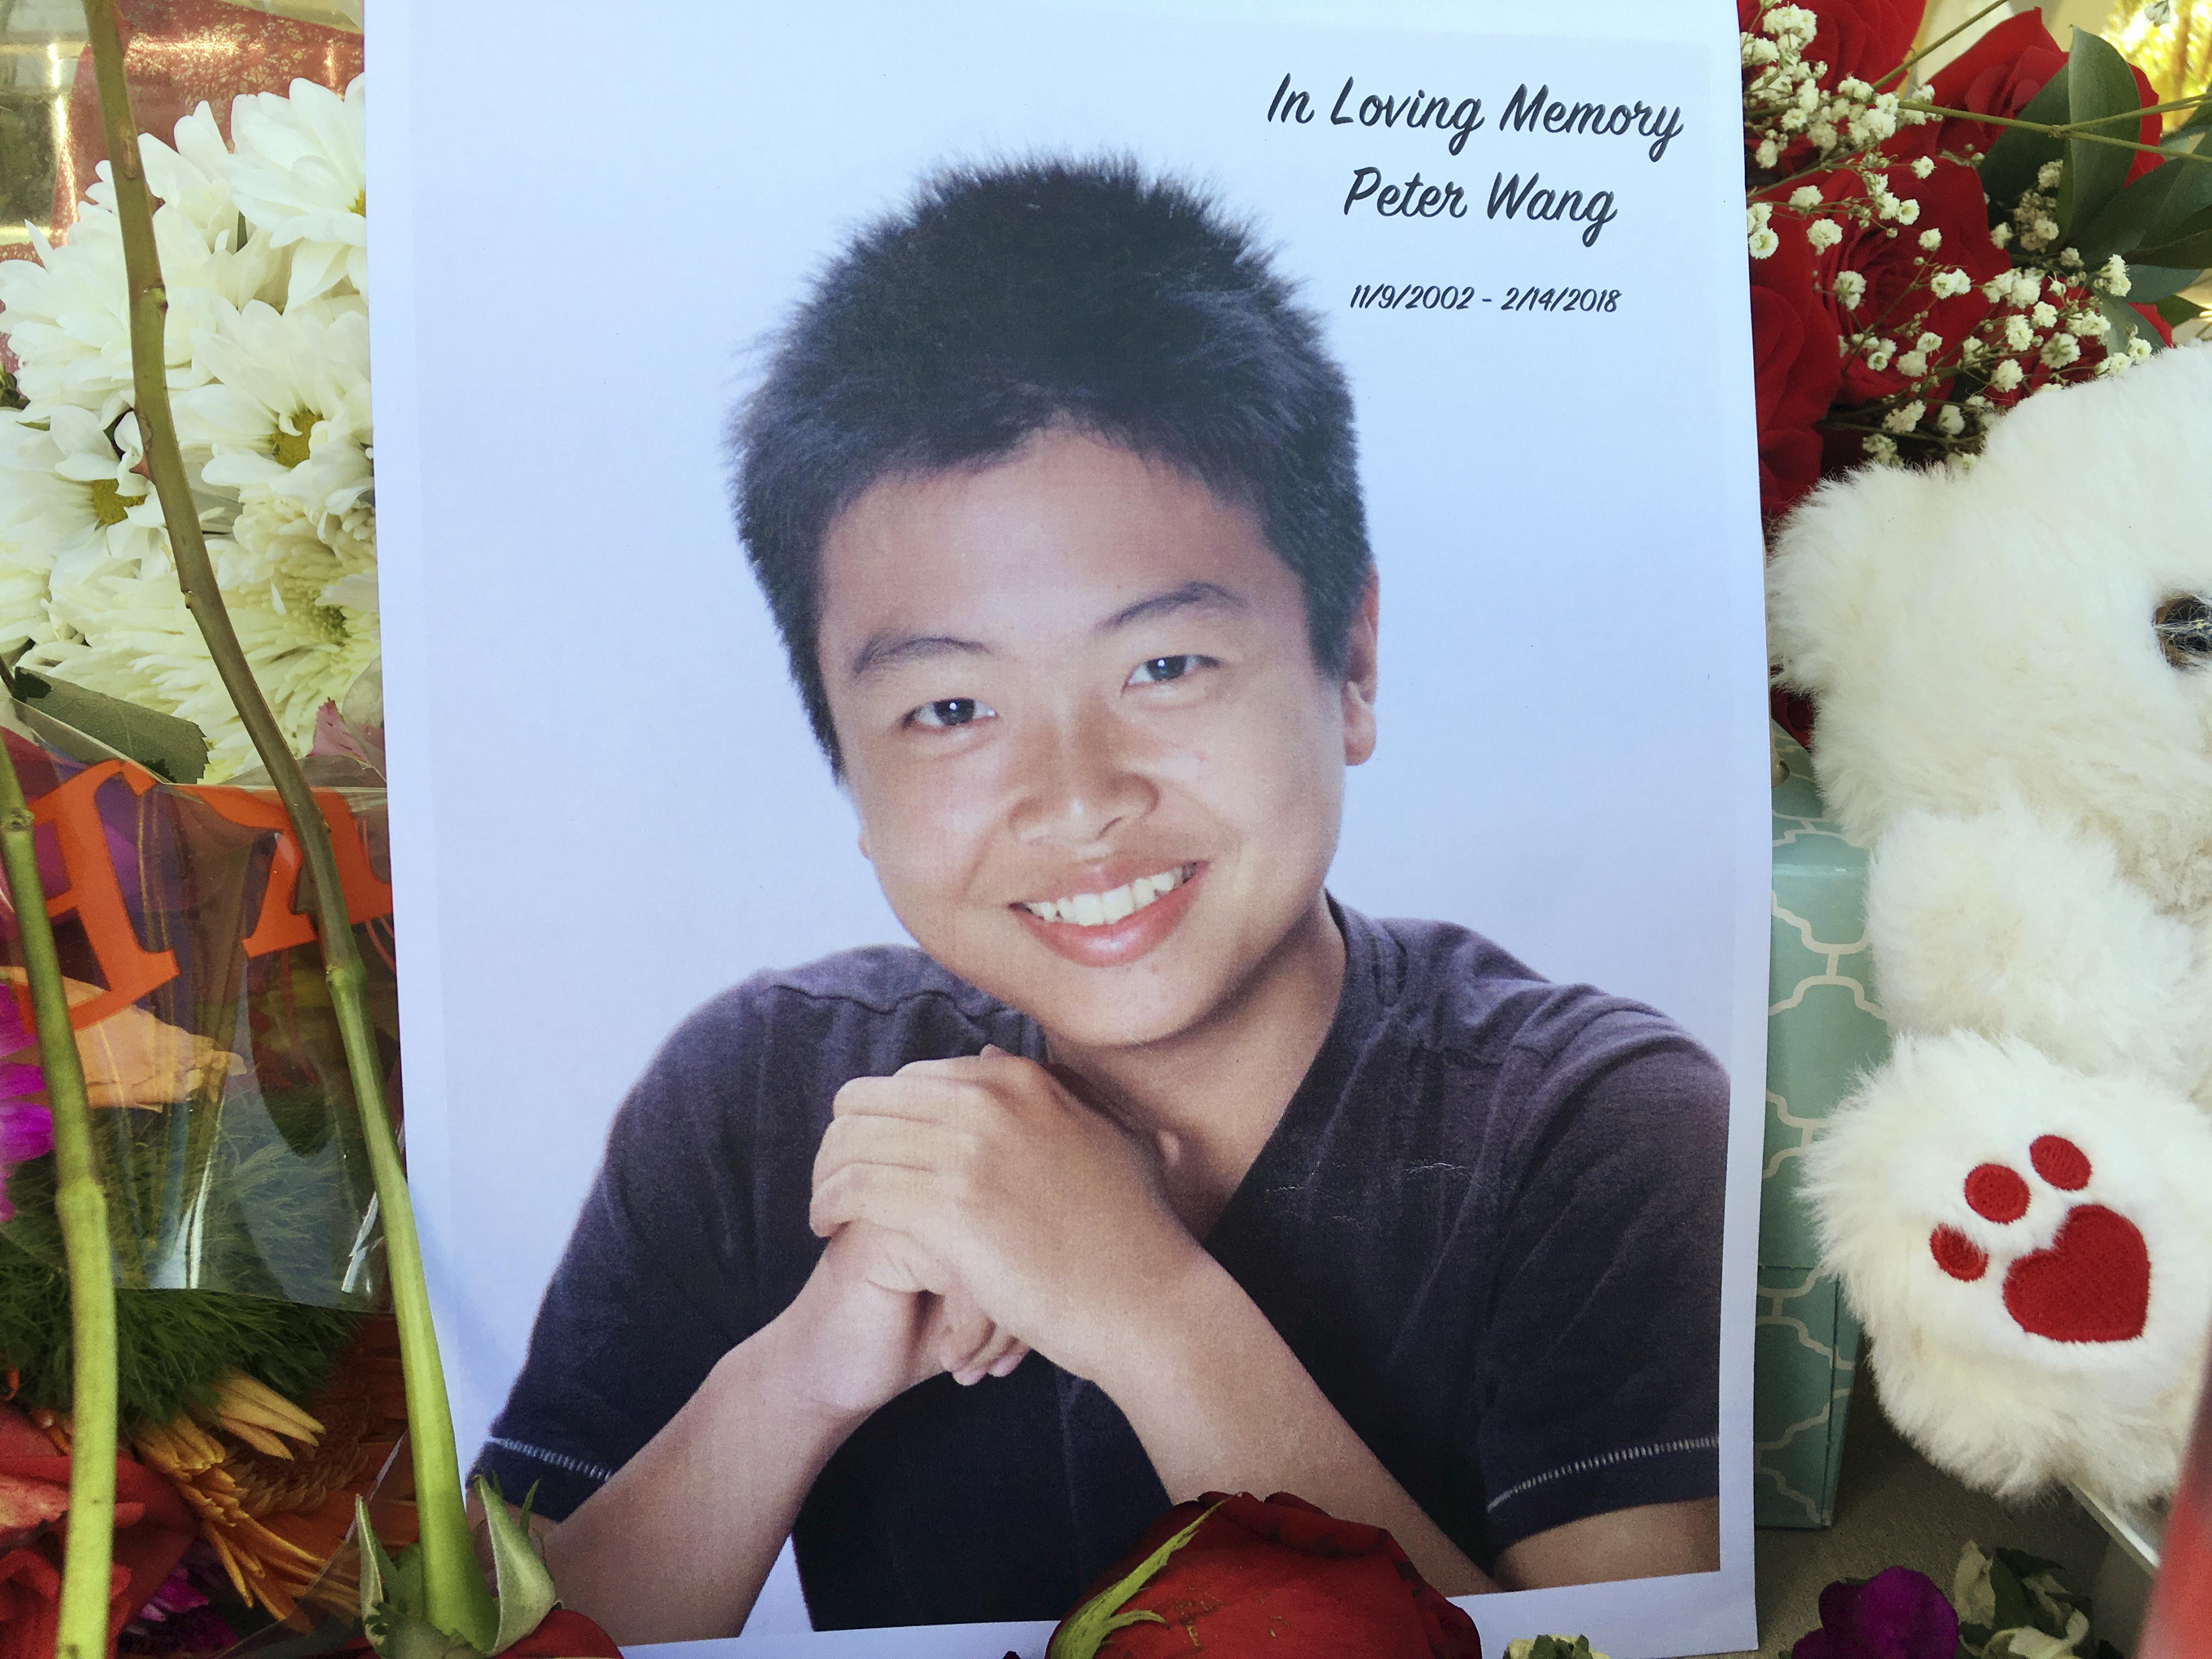 Thousands of people are petitioning the White House to grant a military funeral to one of the students slain in Wednesday's massacre at Marjory Stoneman Douglas High School in Florida. Peter Wang, 15, was a member of the Junior Reserve Officers' Training Corps and, according to witnesses, sacrificed his life while in uniform to save others during …